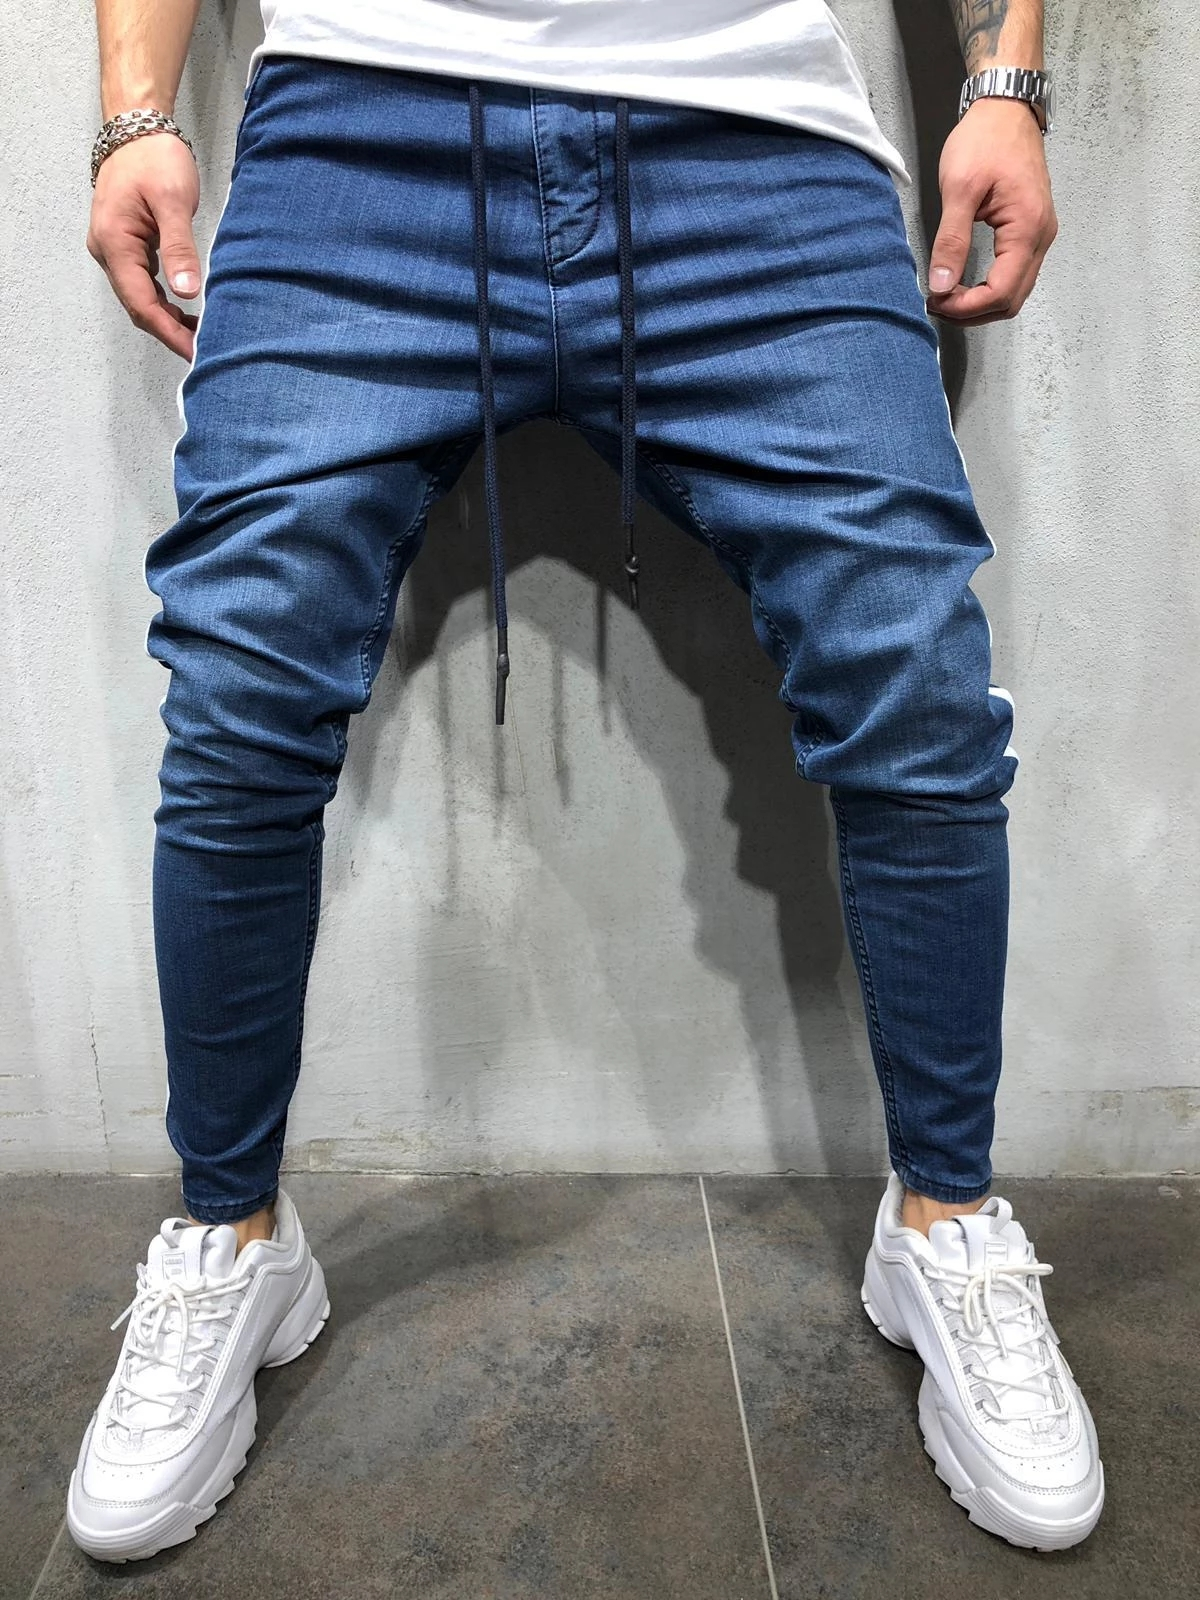 Men's Denim Fabric Casual Sports Personality Side Seam Patchwork Jeans .